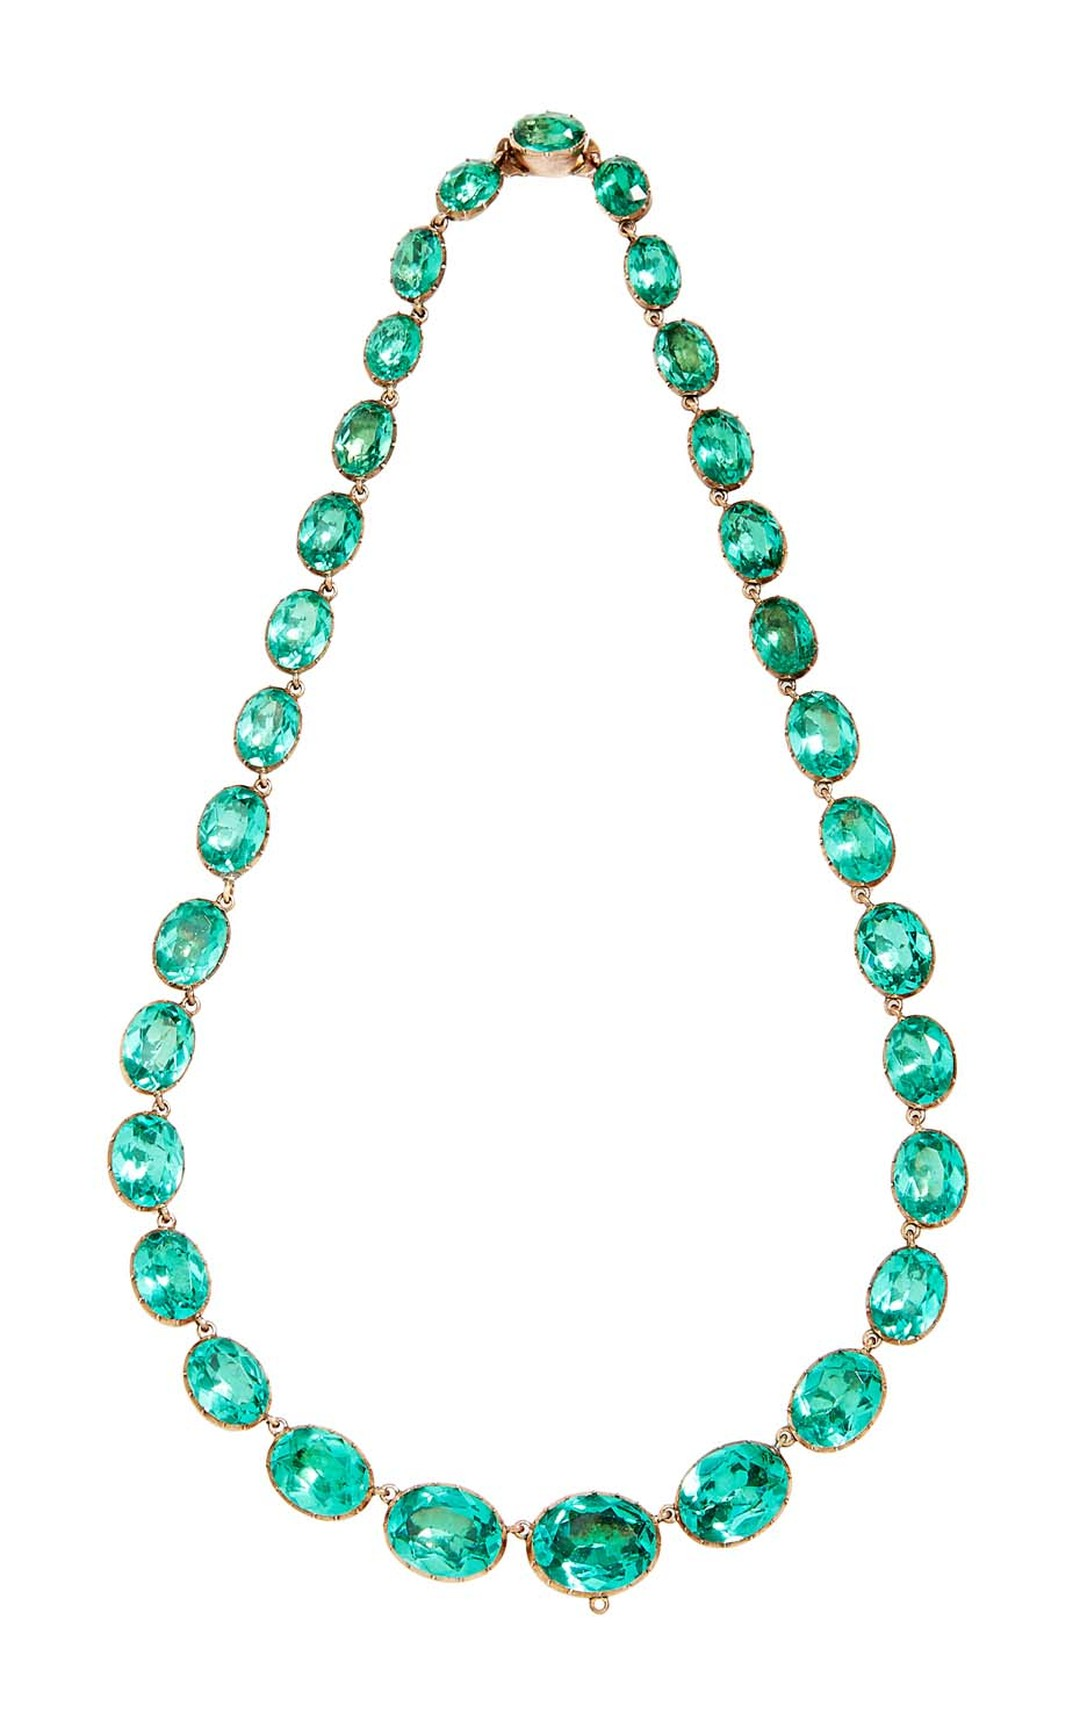 FD Gallery's 19th century antique necklace featuring a series of graduated green paste with a gold foiled back setting. $15,000 at Moda Operandi.